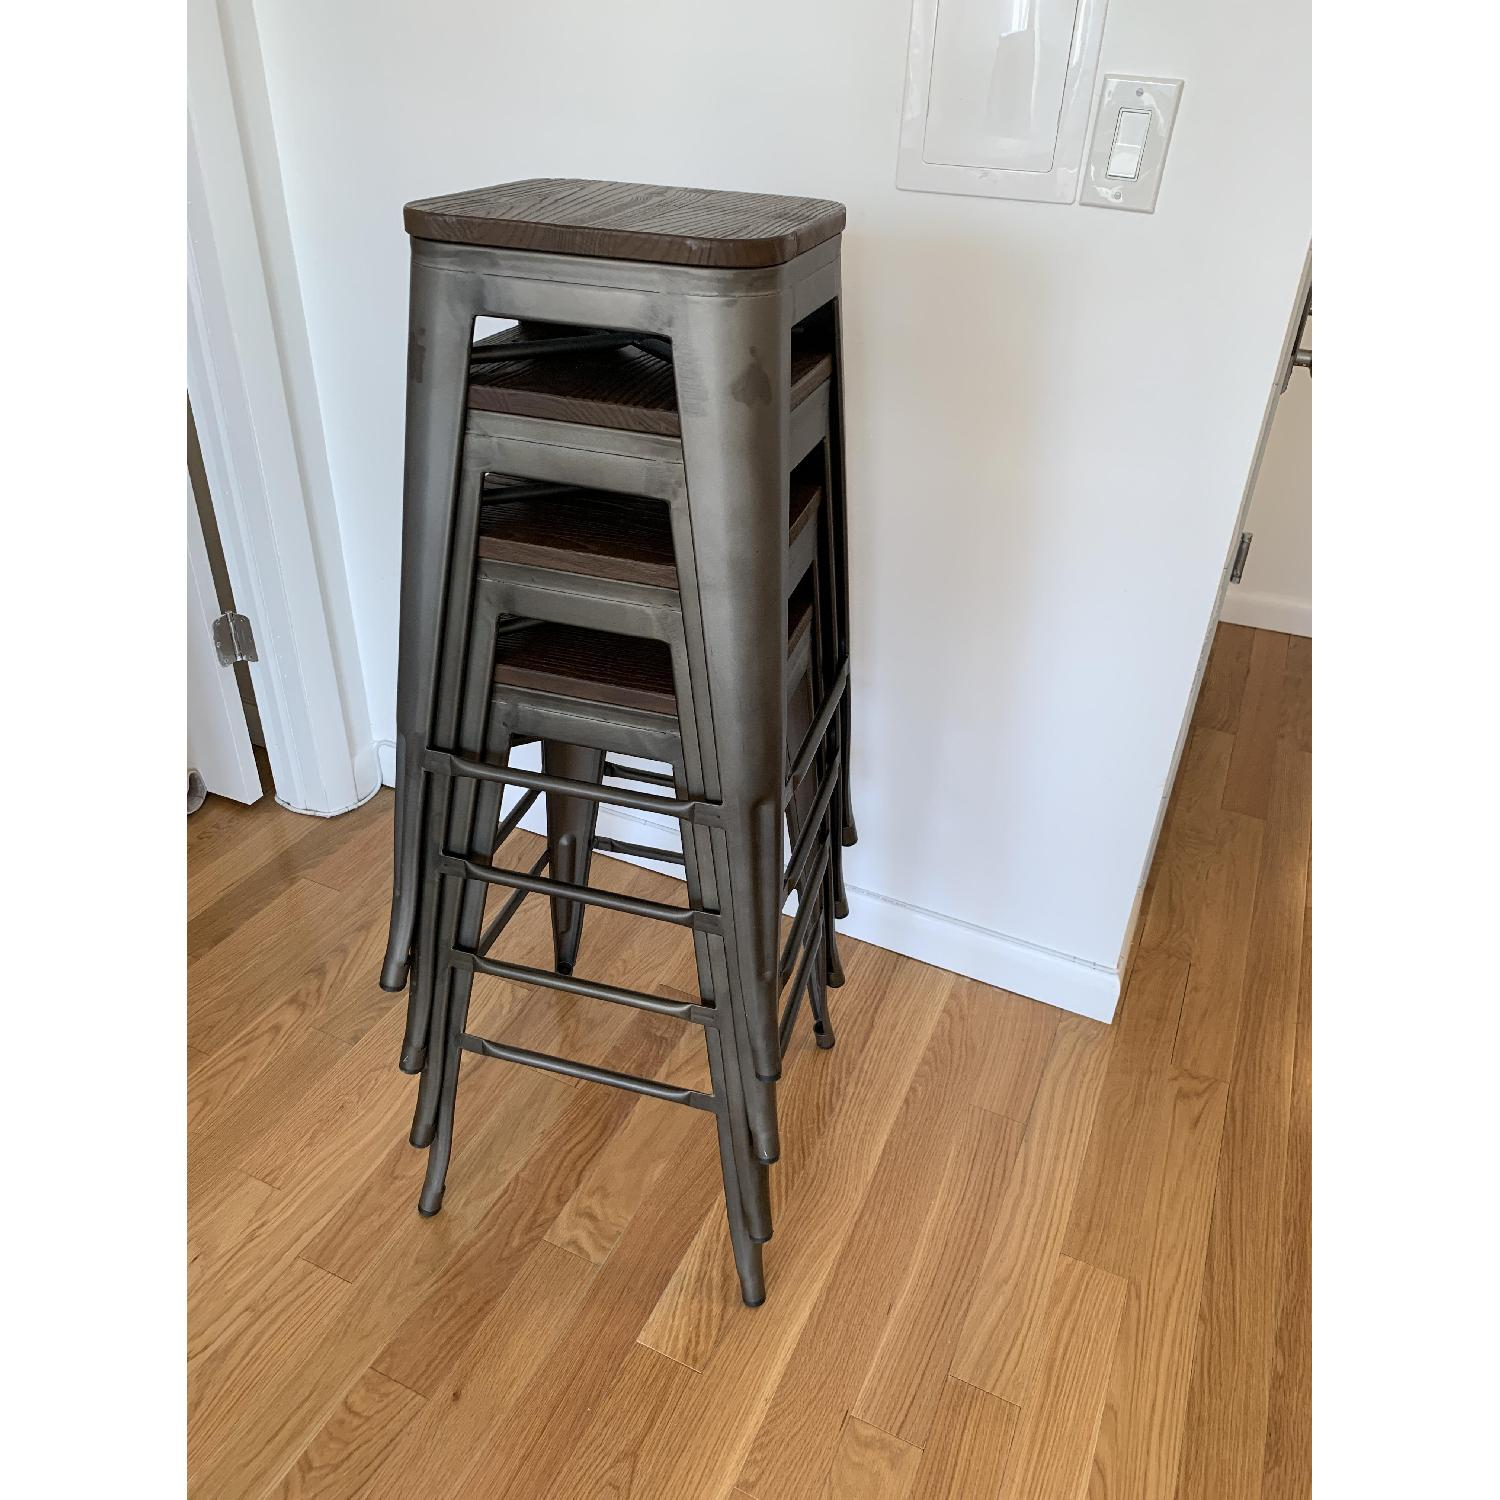 BTExpert Industrial Rustic Metal Stools w/ Wood Top - image-2